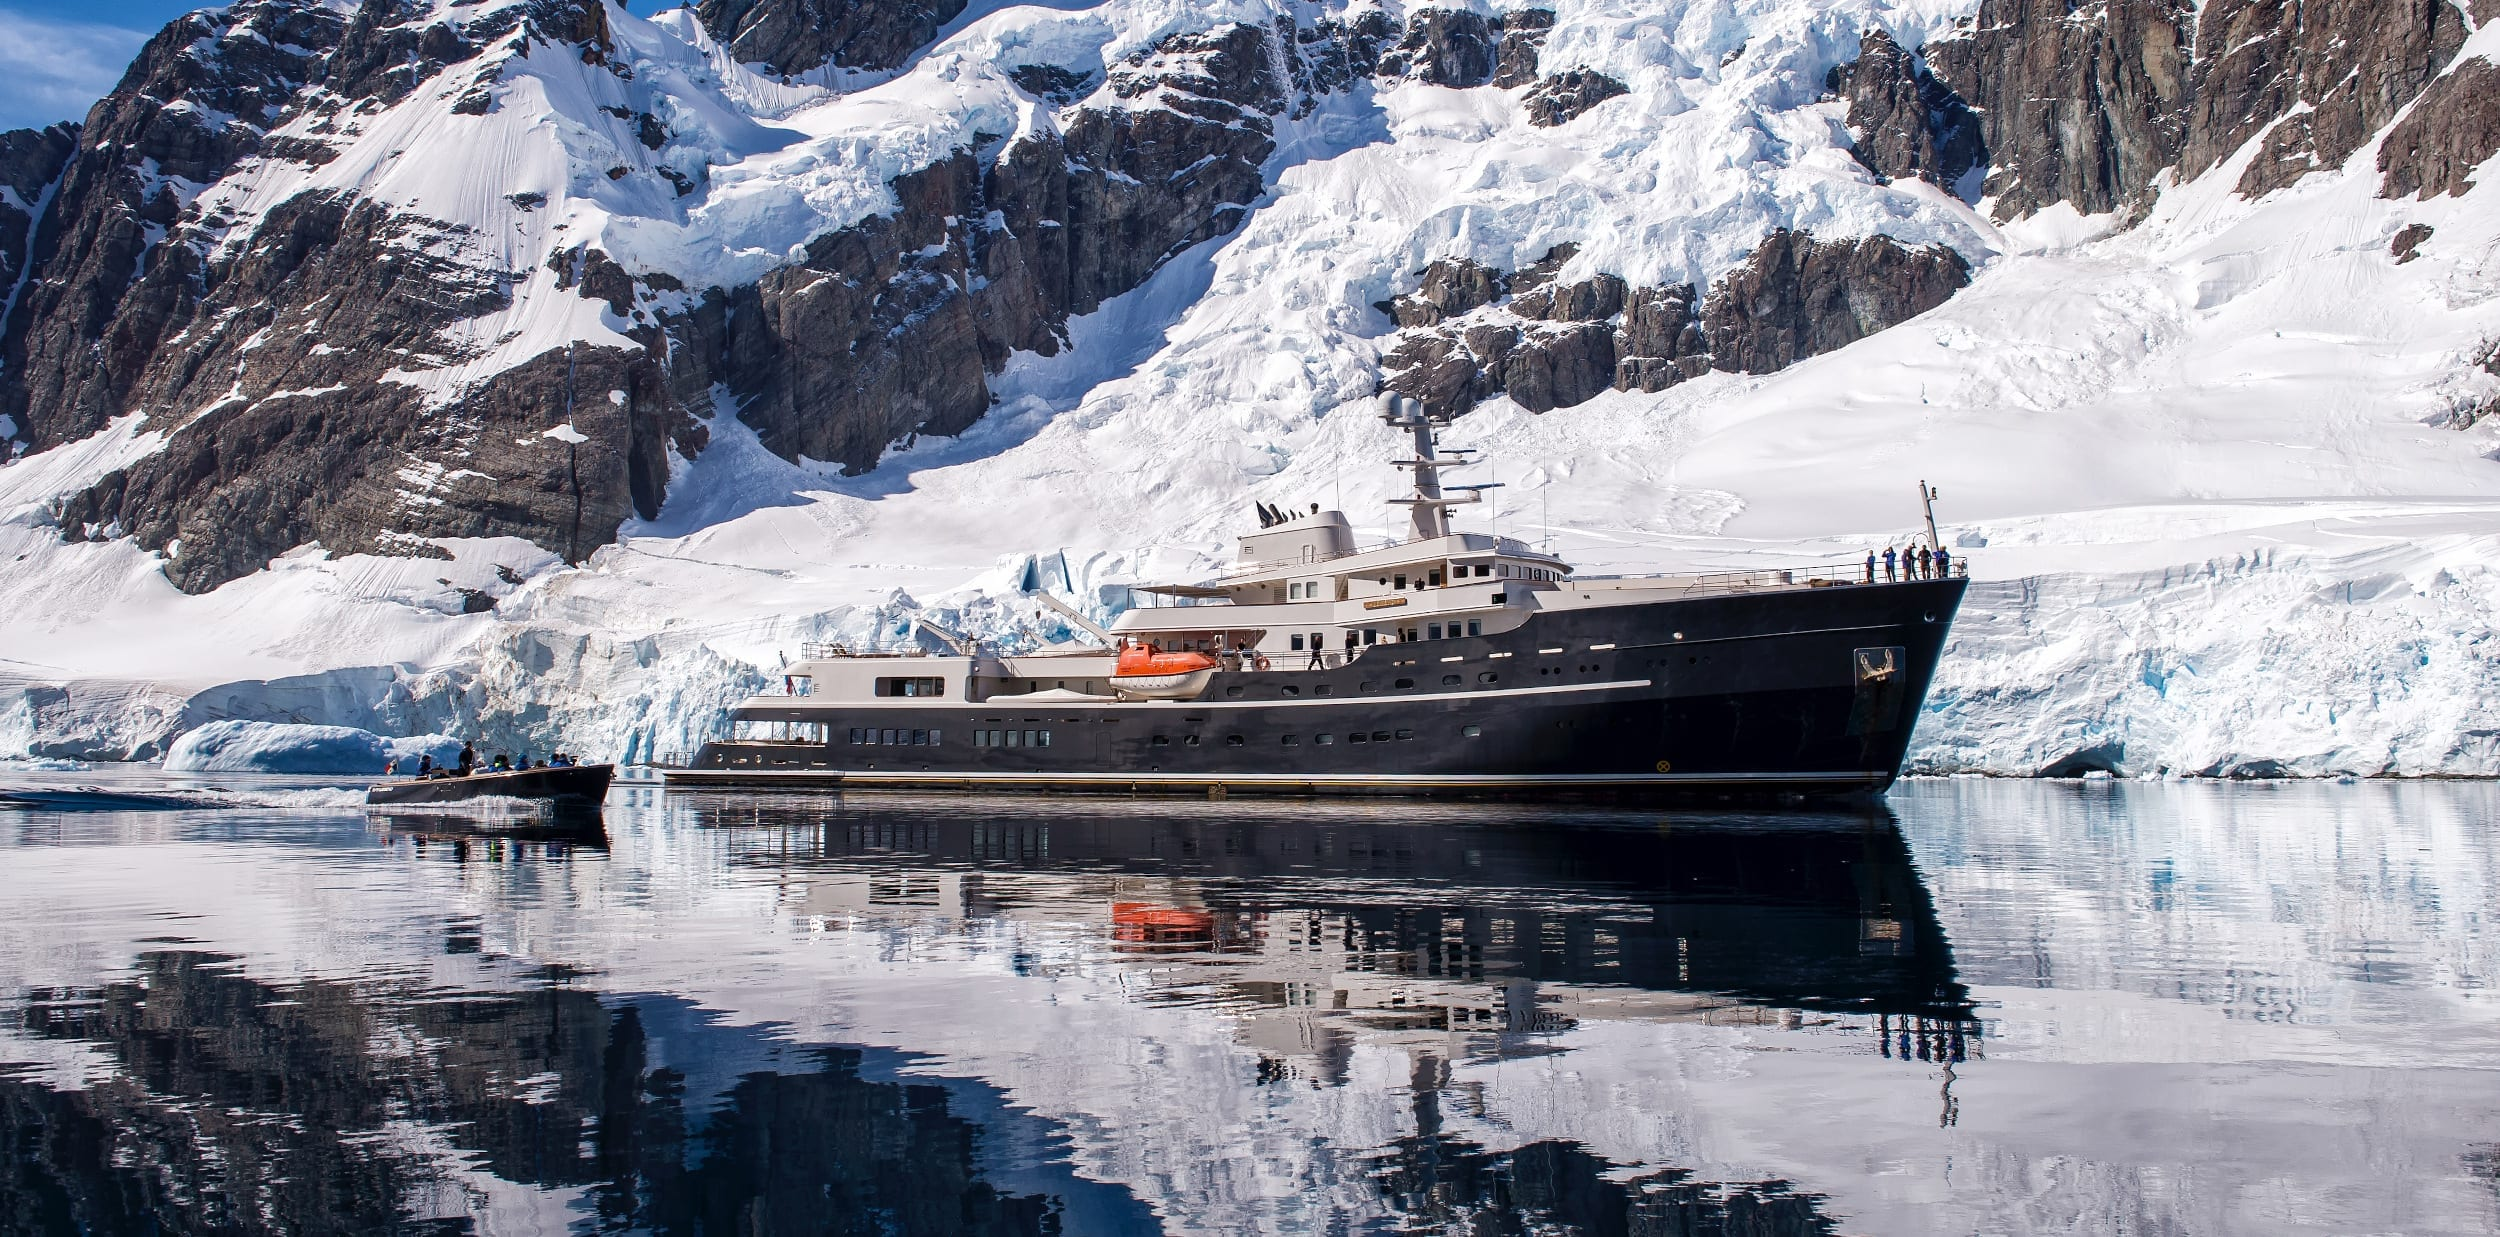 Legend Yacht Cruising in Antarctica